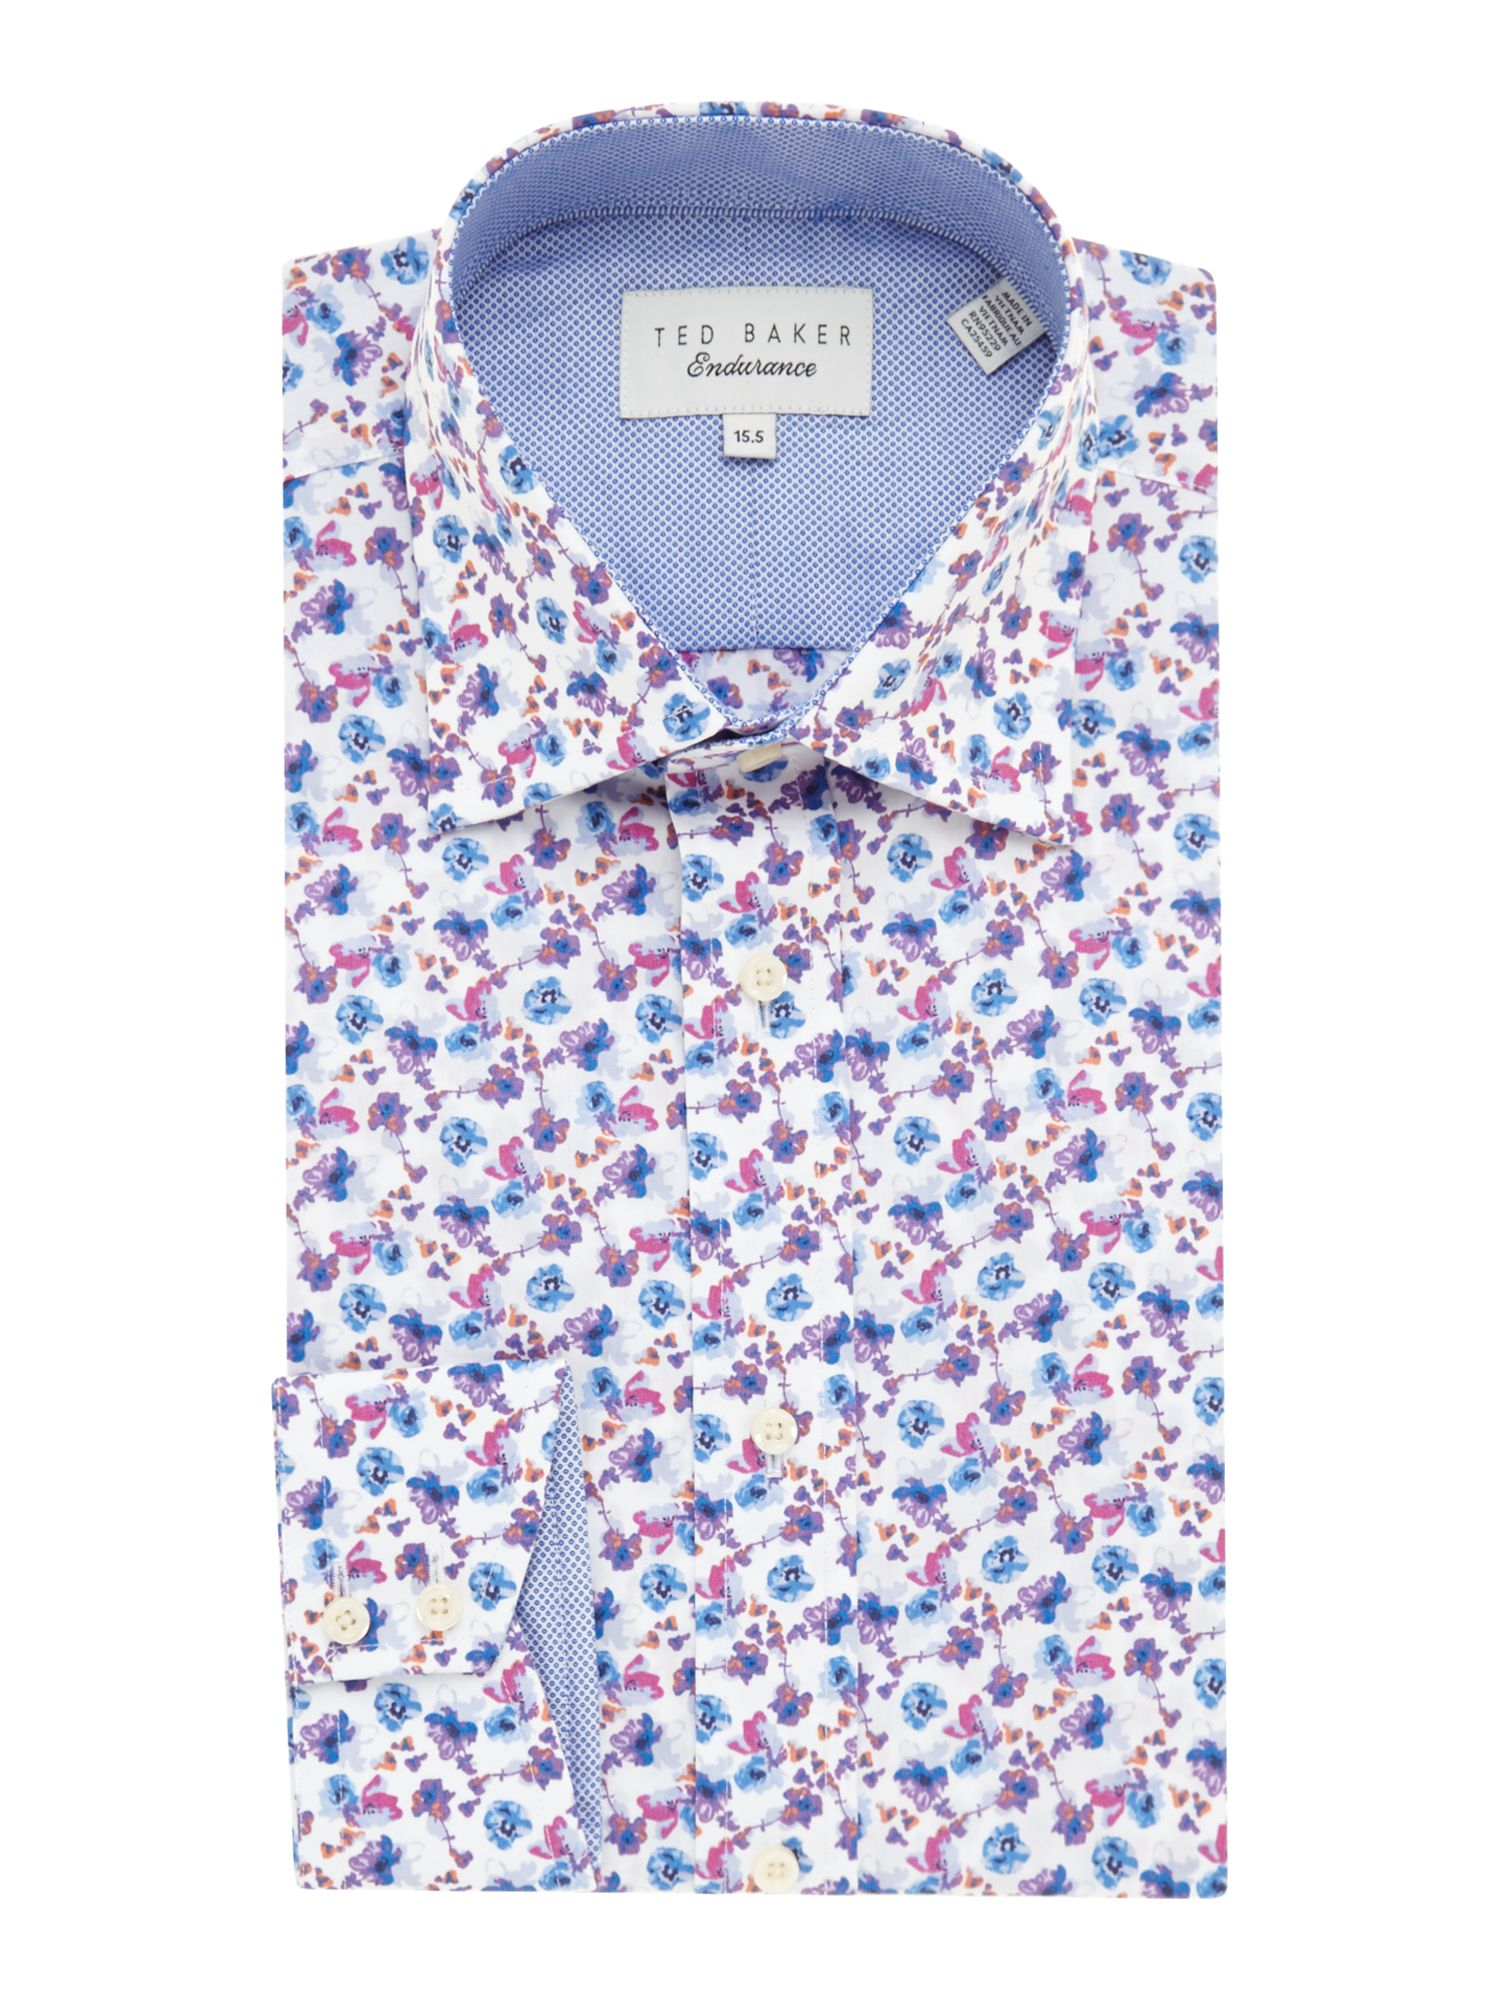 Ted baker wroxall floral regular fit shirt in pink for men for Ted baker floral shirt